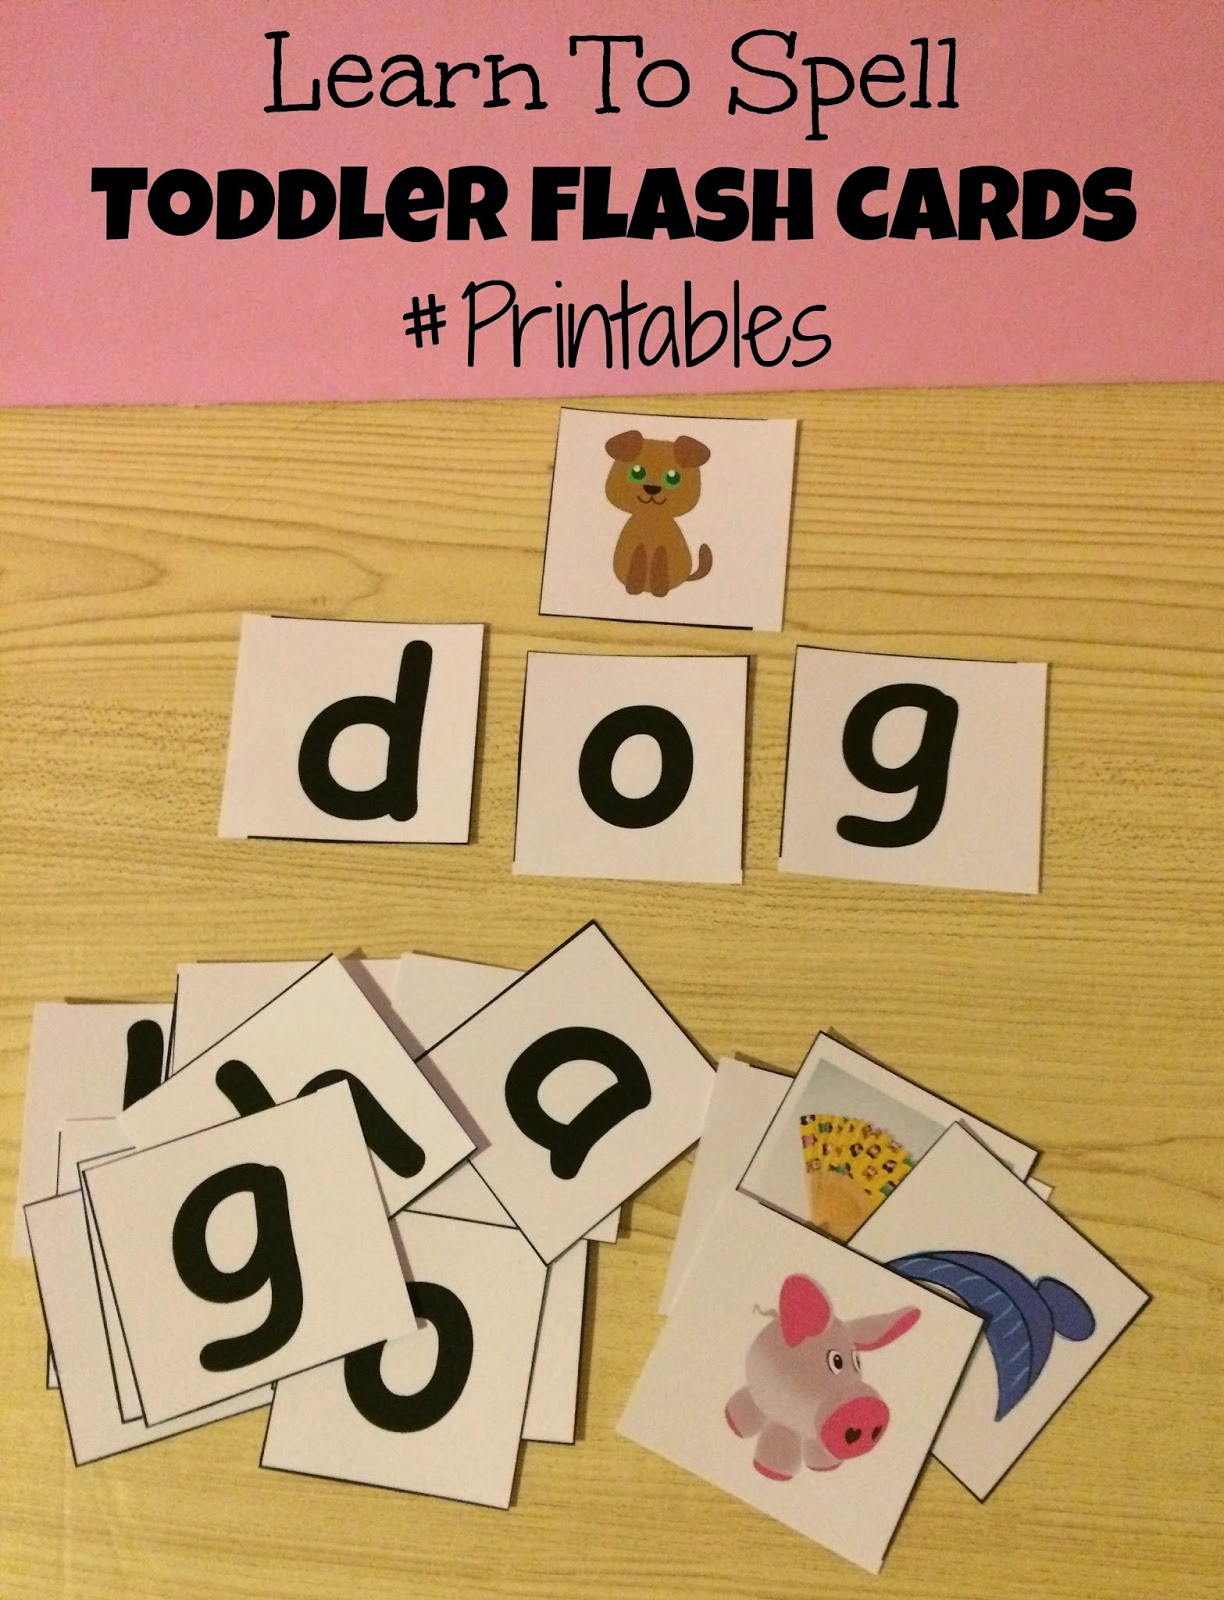 image regarding Printable Toddler Flash Cards identified as Find out In the direction of Spell Infant Flash Playing cards #Printable - To start with Season